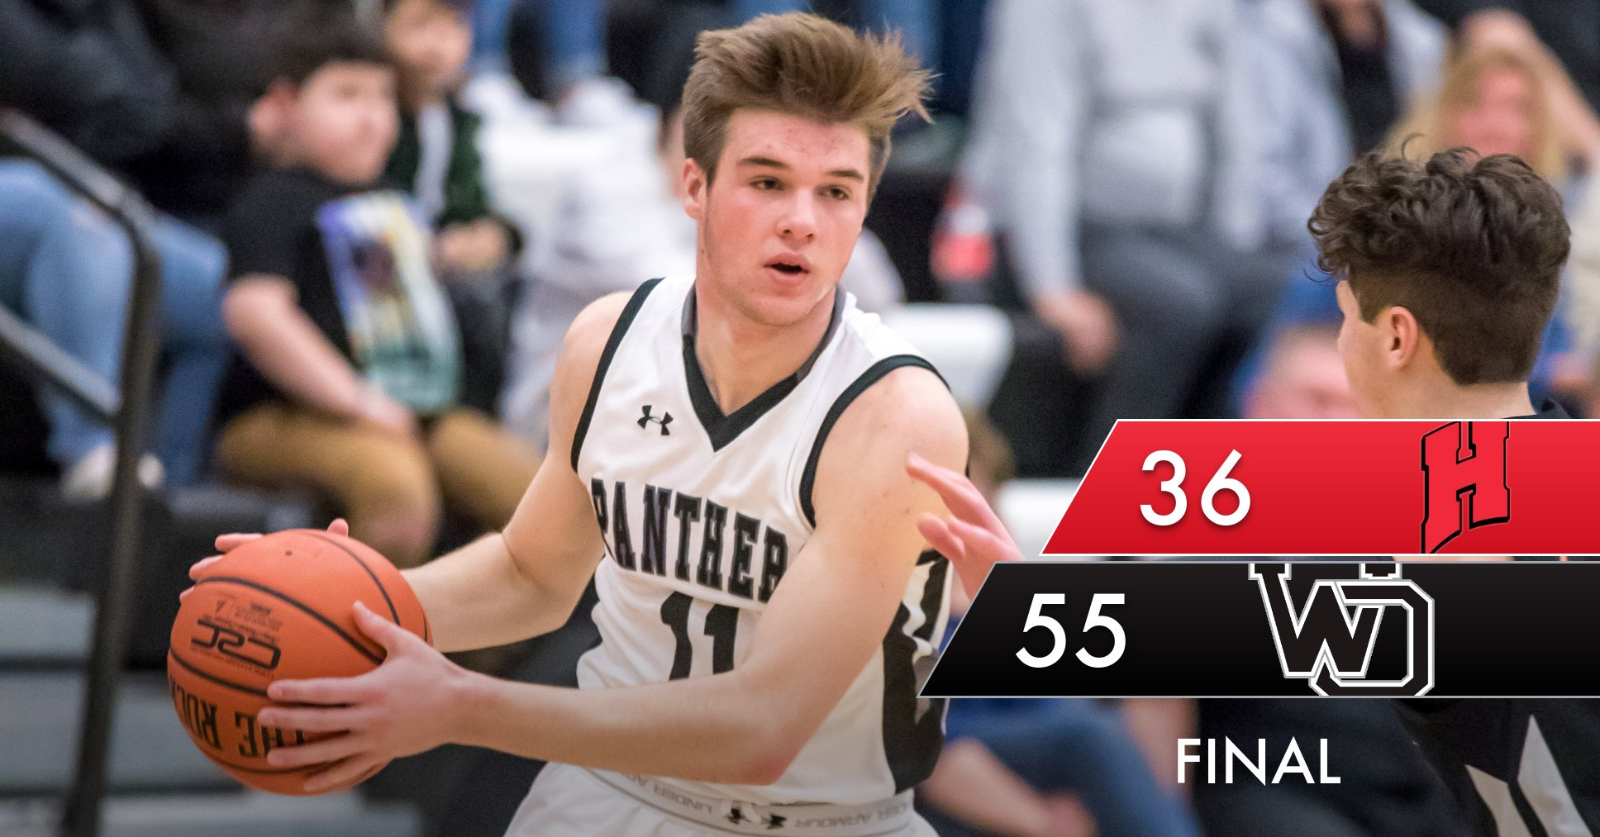 Panthers win district opener